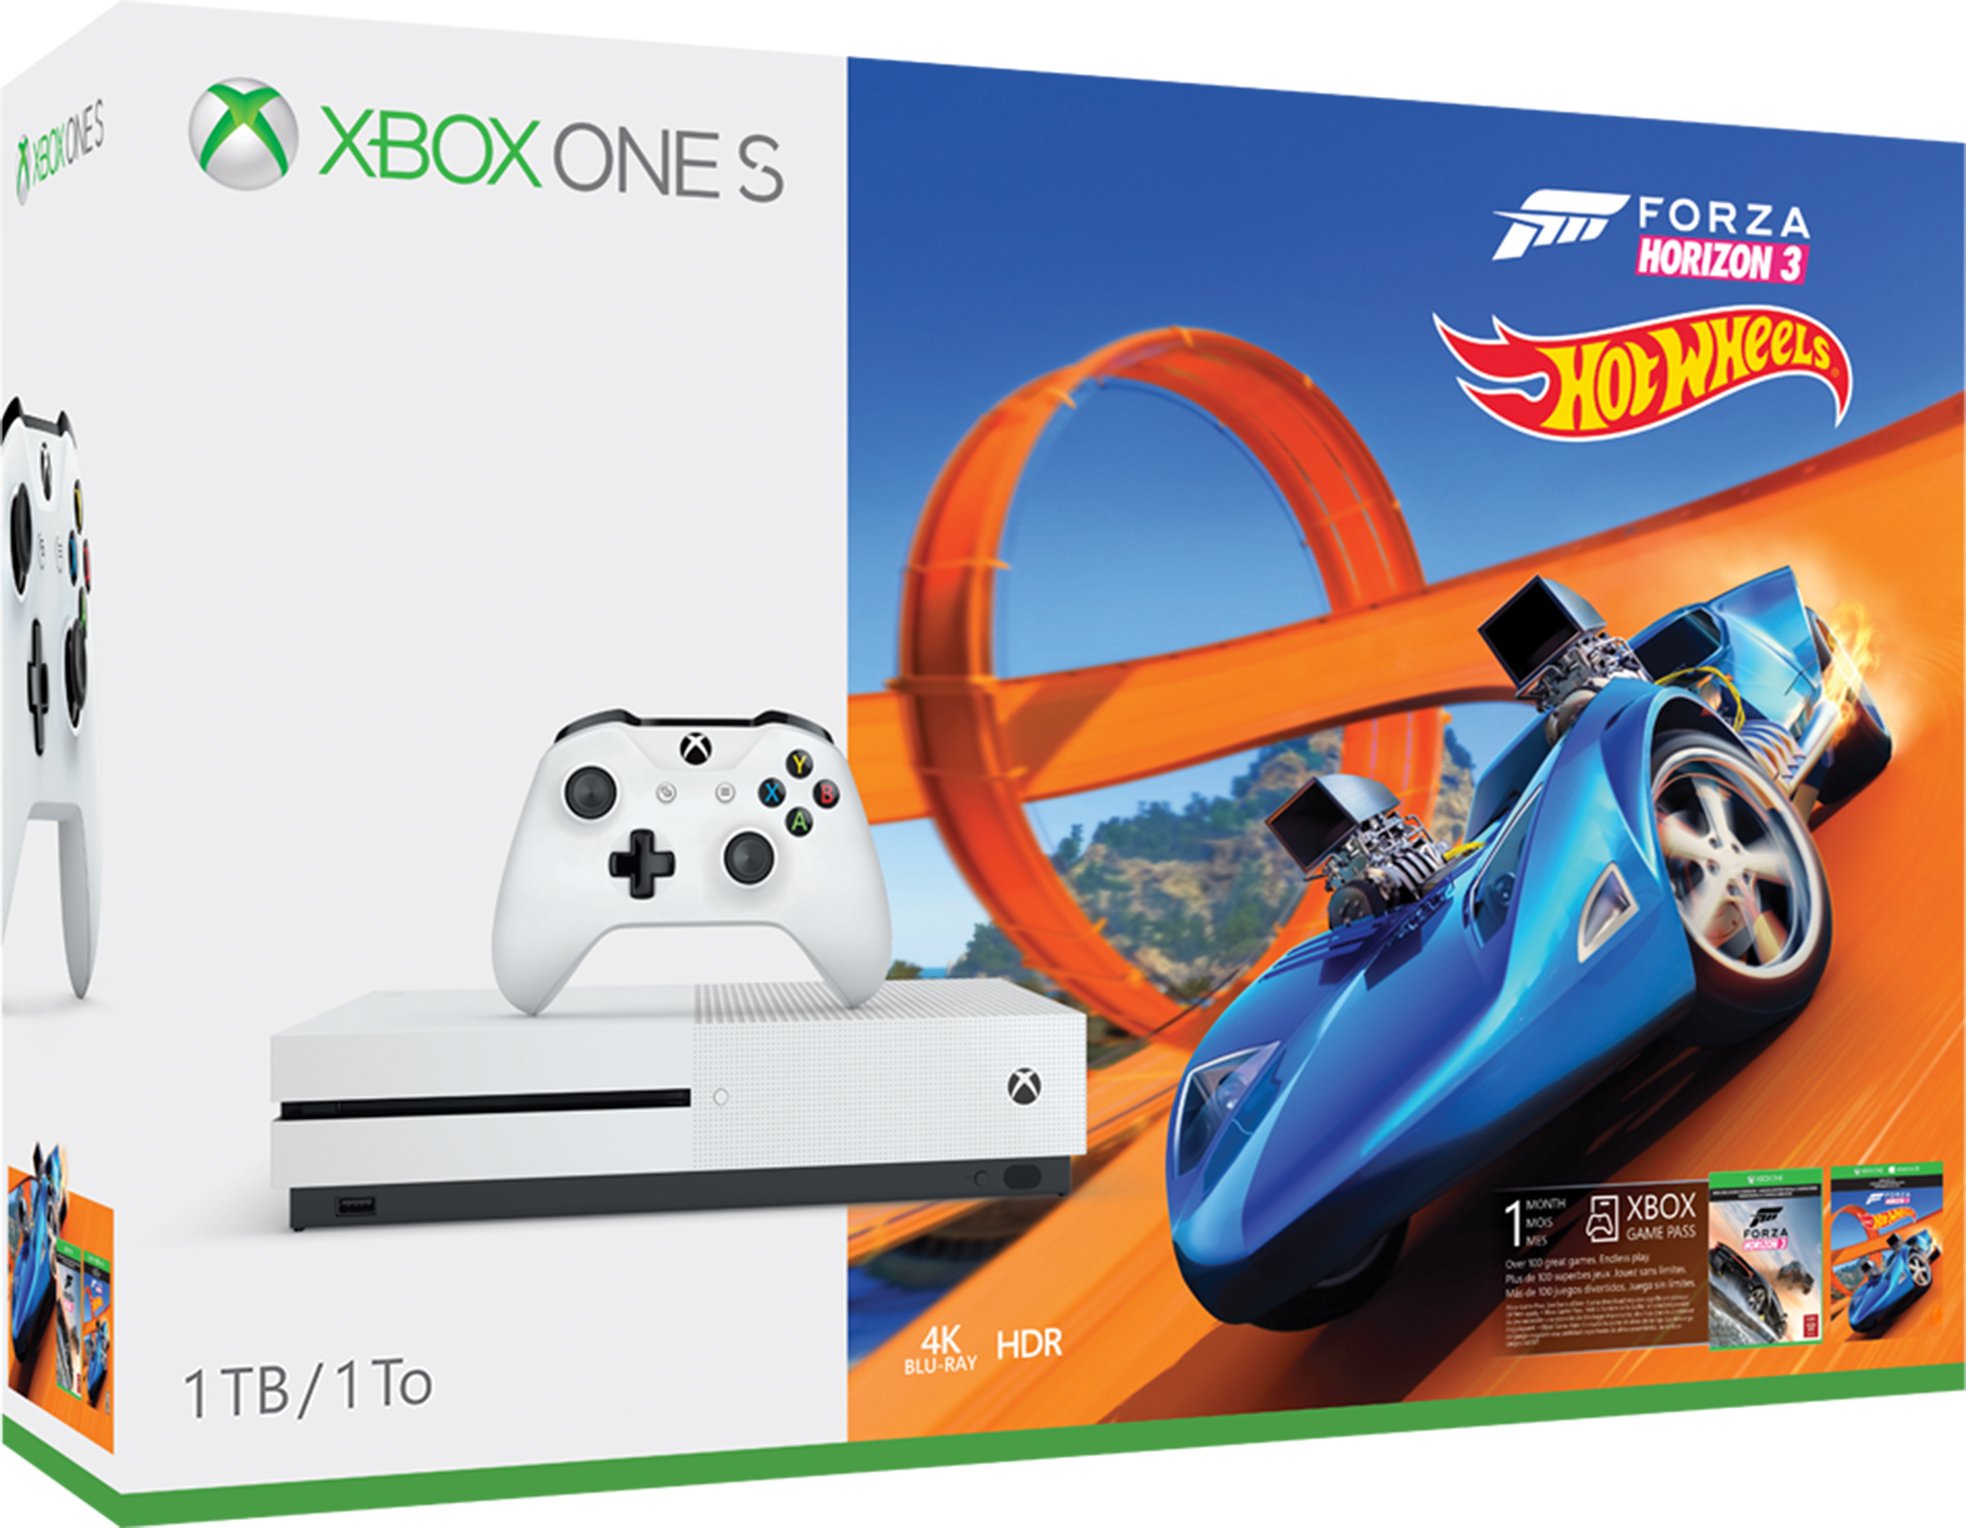 Pack Console Xbox One S 1 To - Forza Horizon 3 Hot Wheels